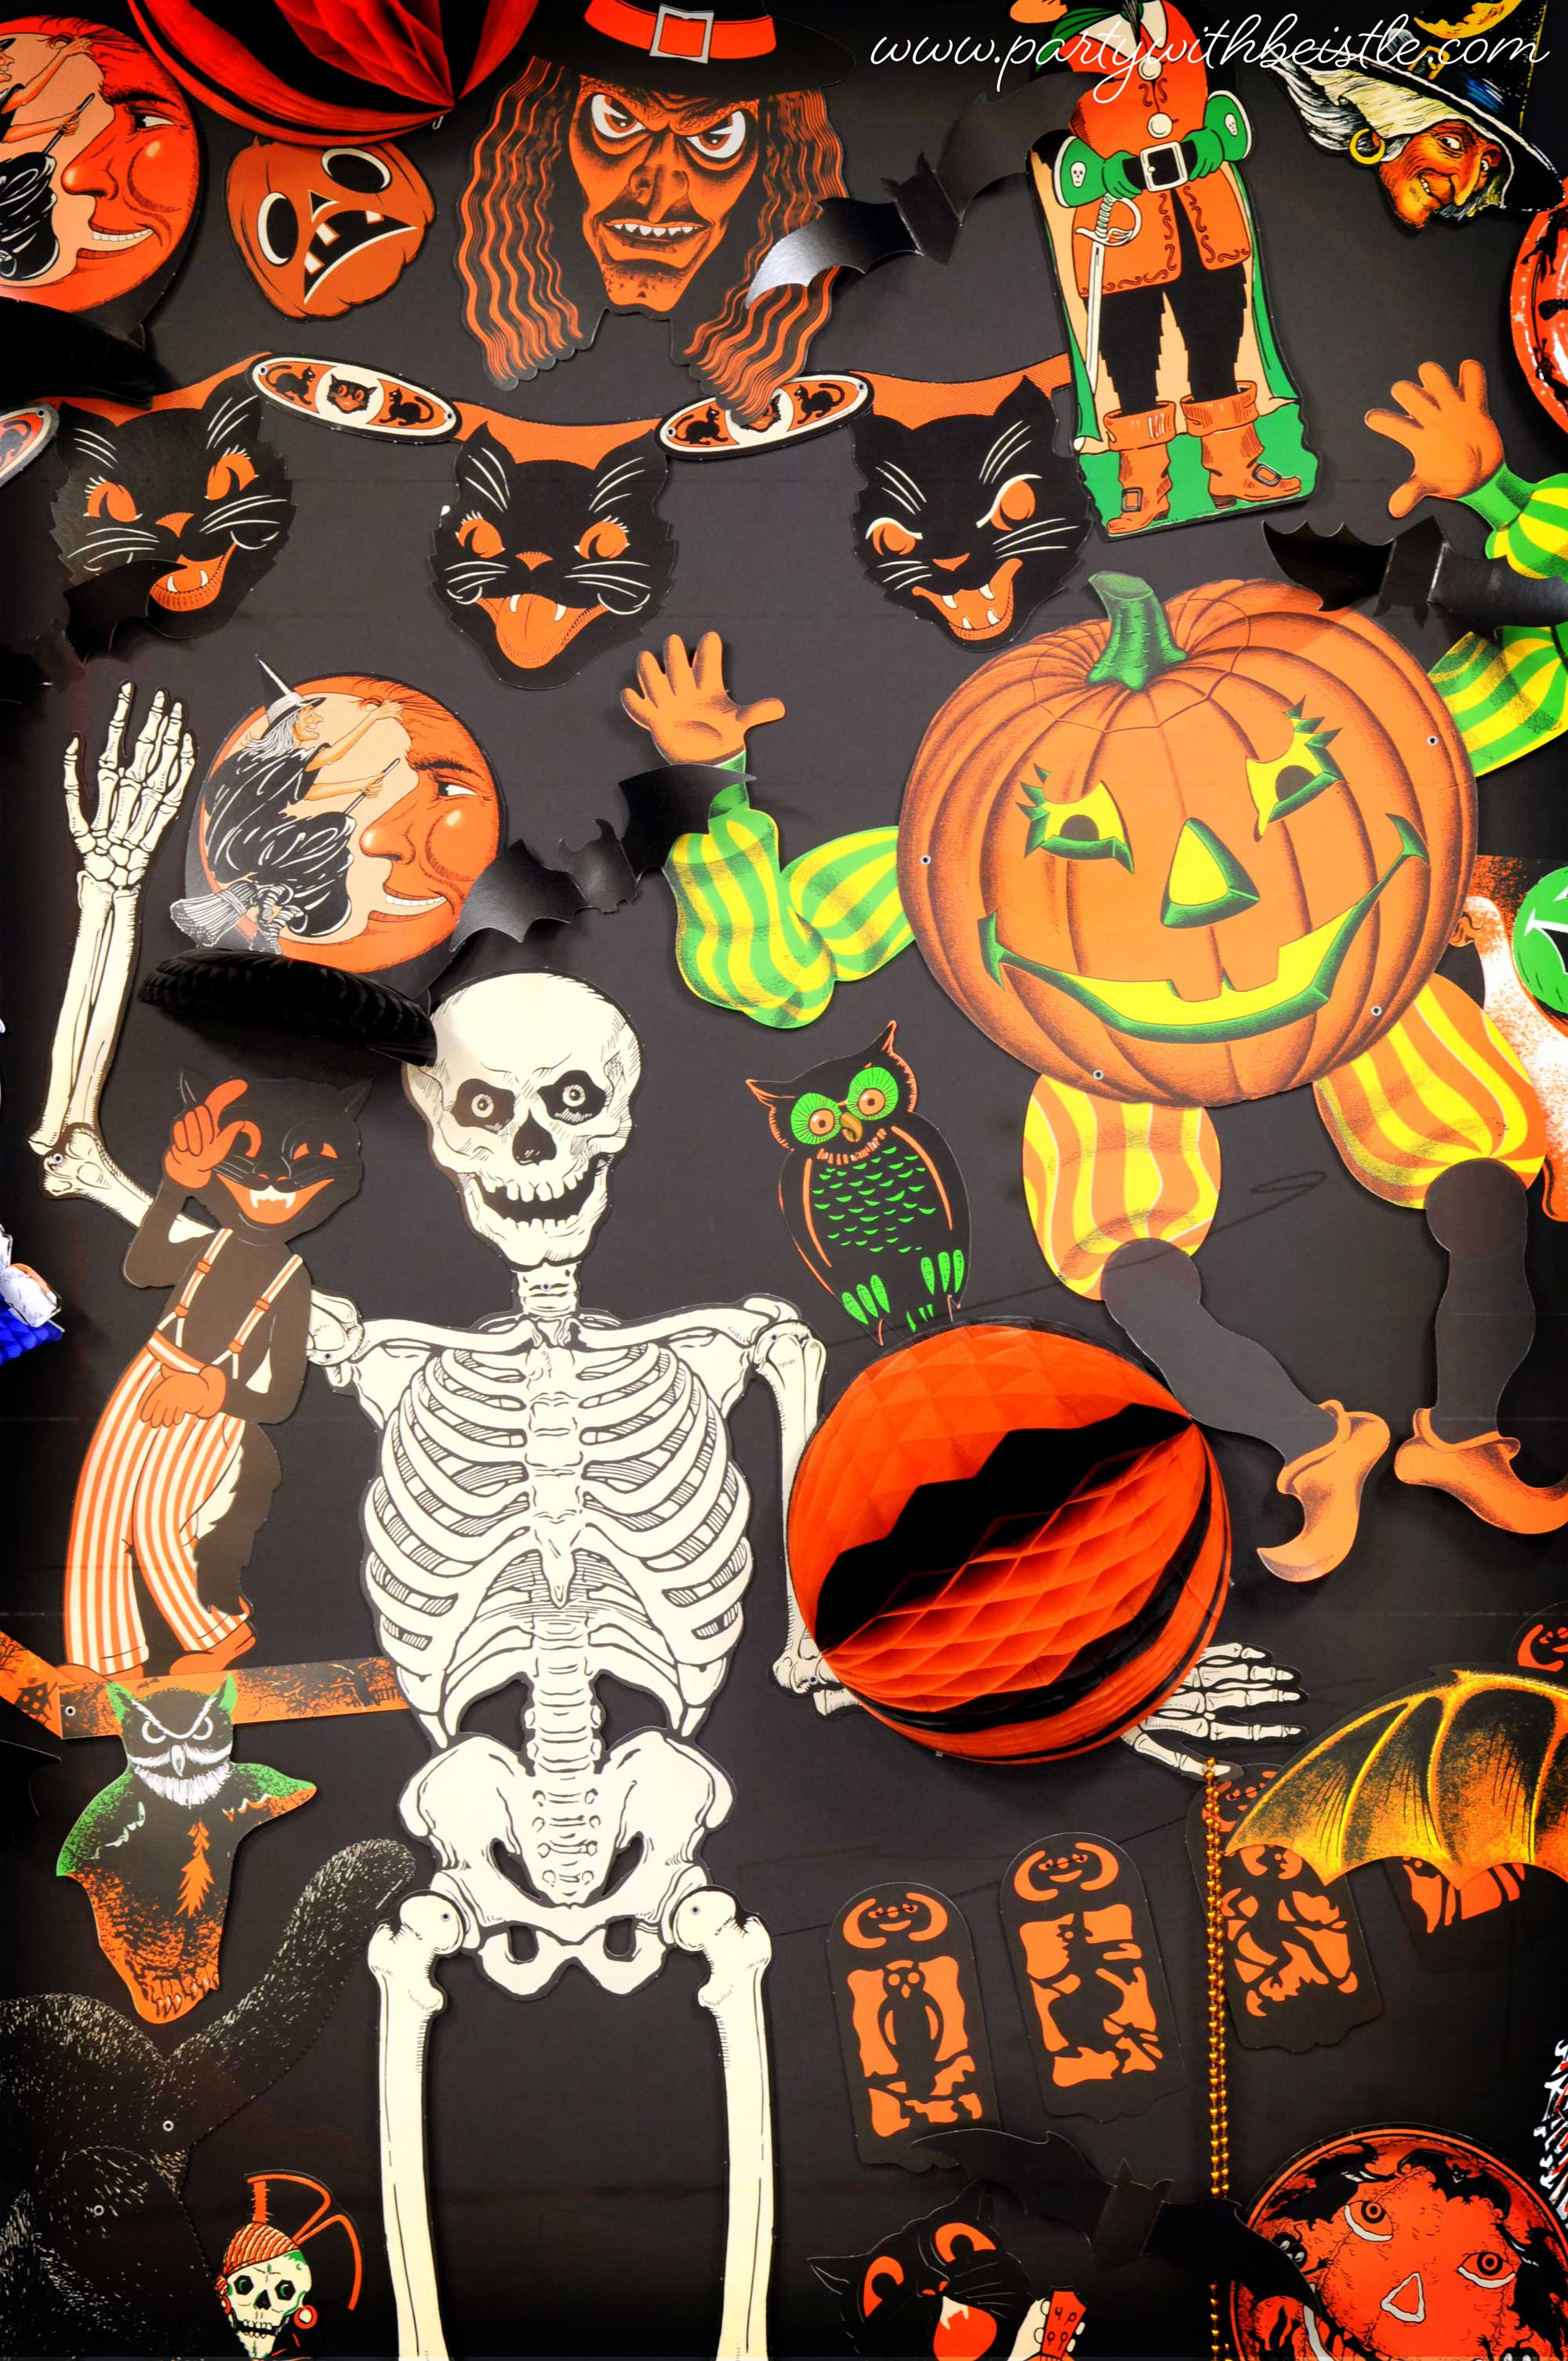 Beistle S Wall Of Spook Tacular Greatness